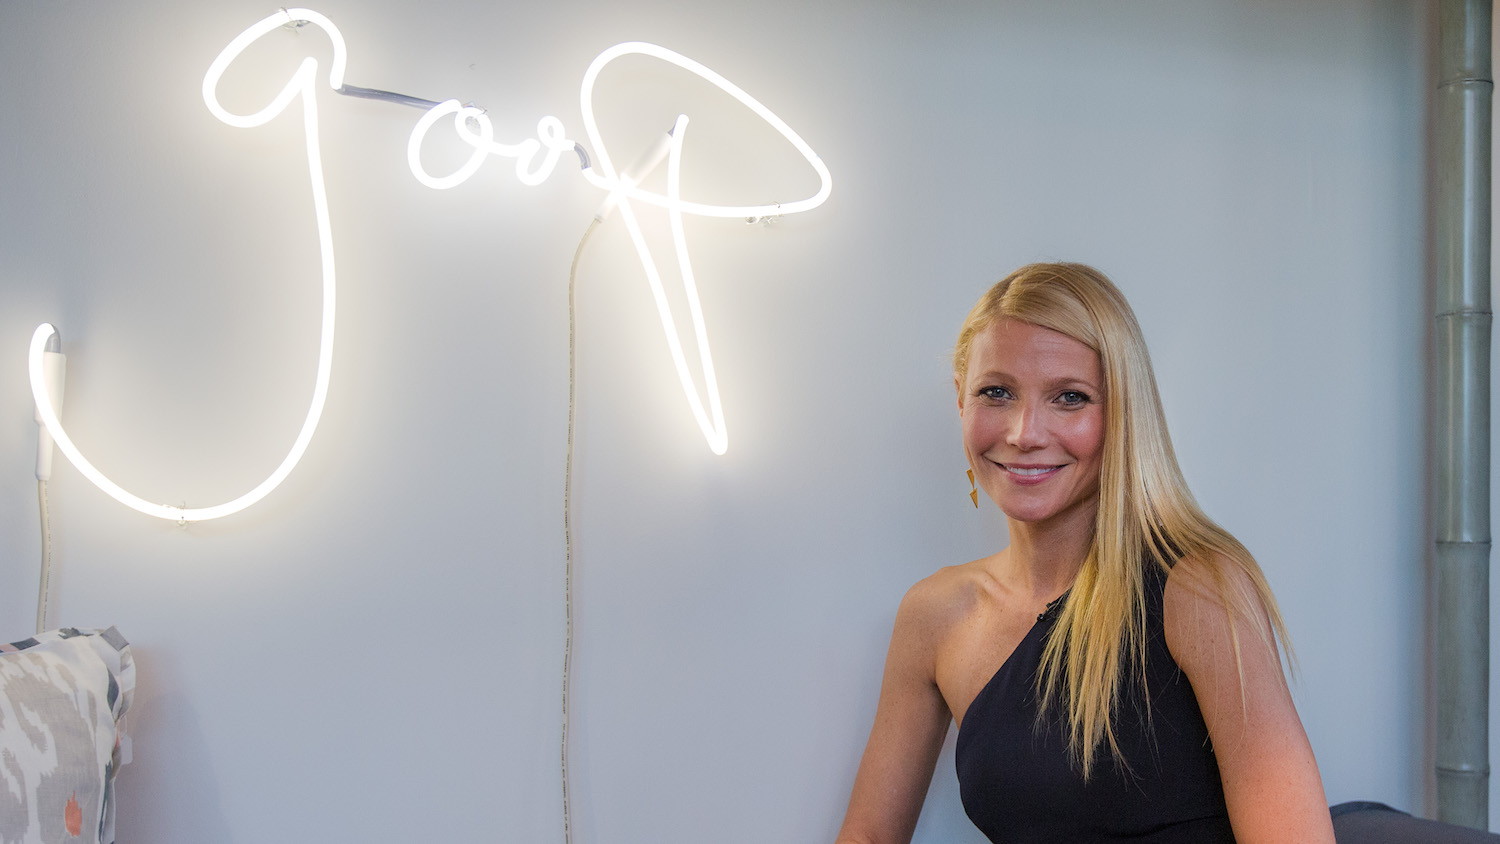 Gwyneth Paltrow's New Goop Pop-Up Shop Opens Today